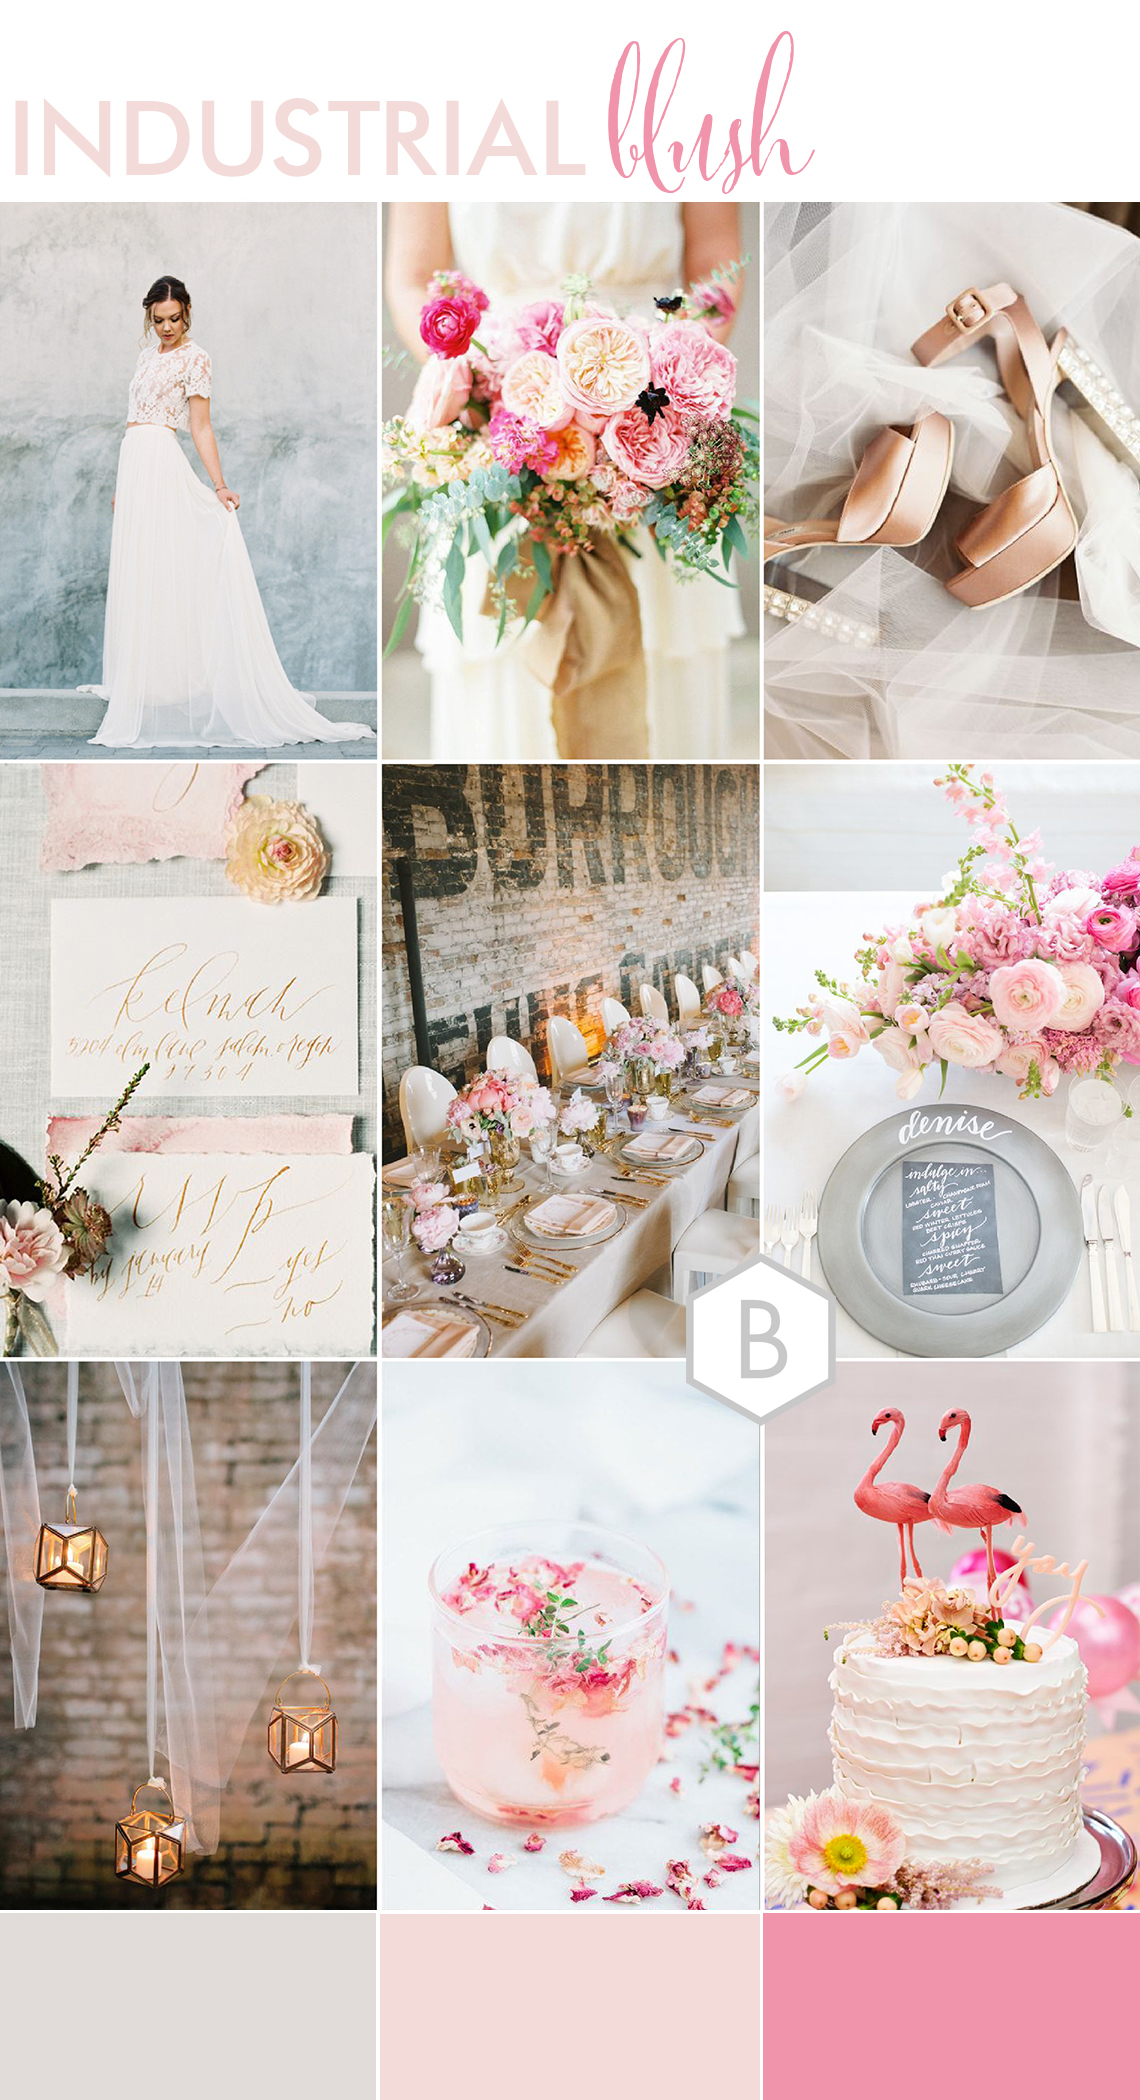 wedding moodboard of ideas for a pink and white wedding with a contemporary industrial style setting and pretty details